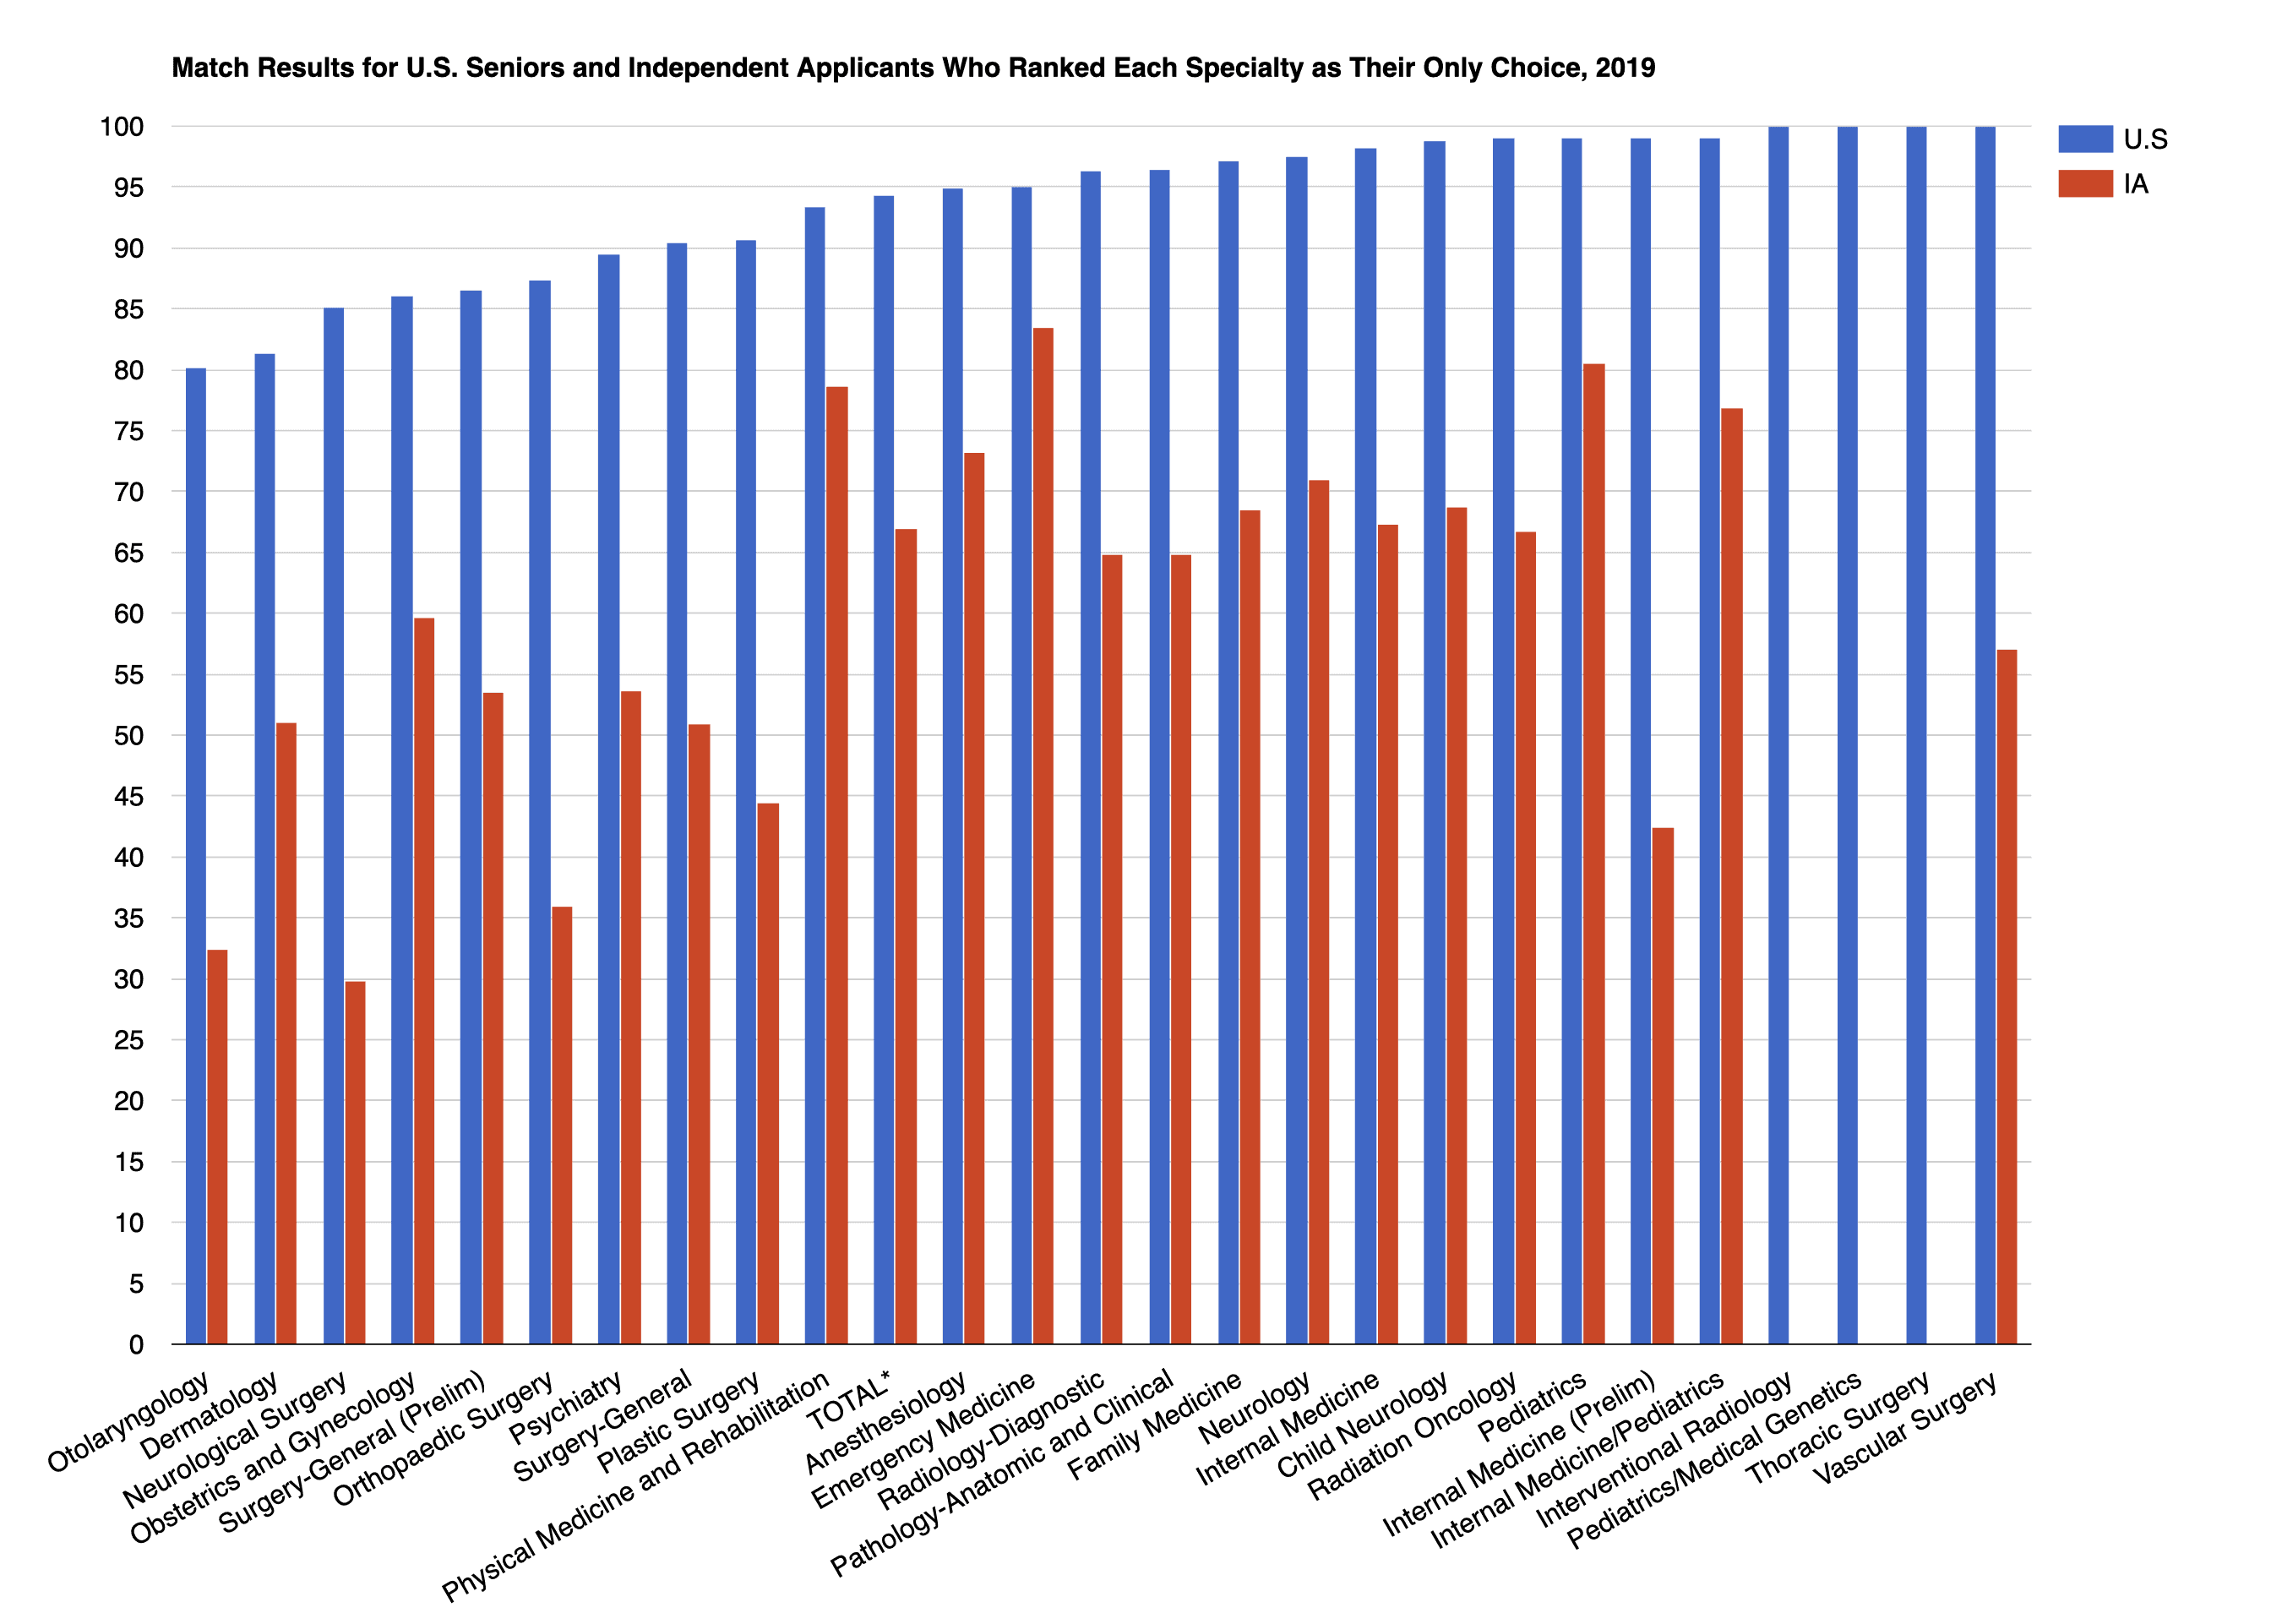 Match Rates for Ranking Only One Specialty